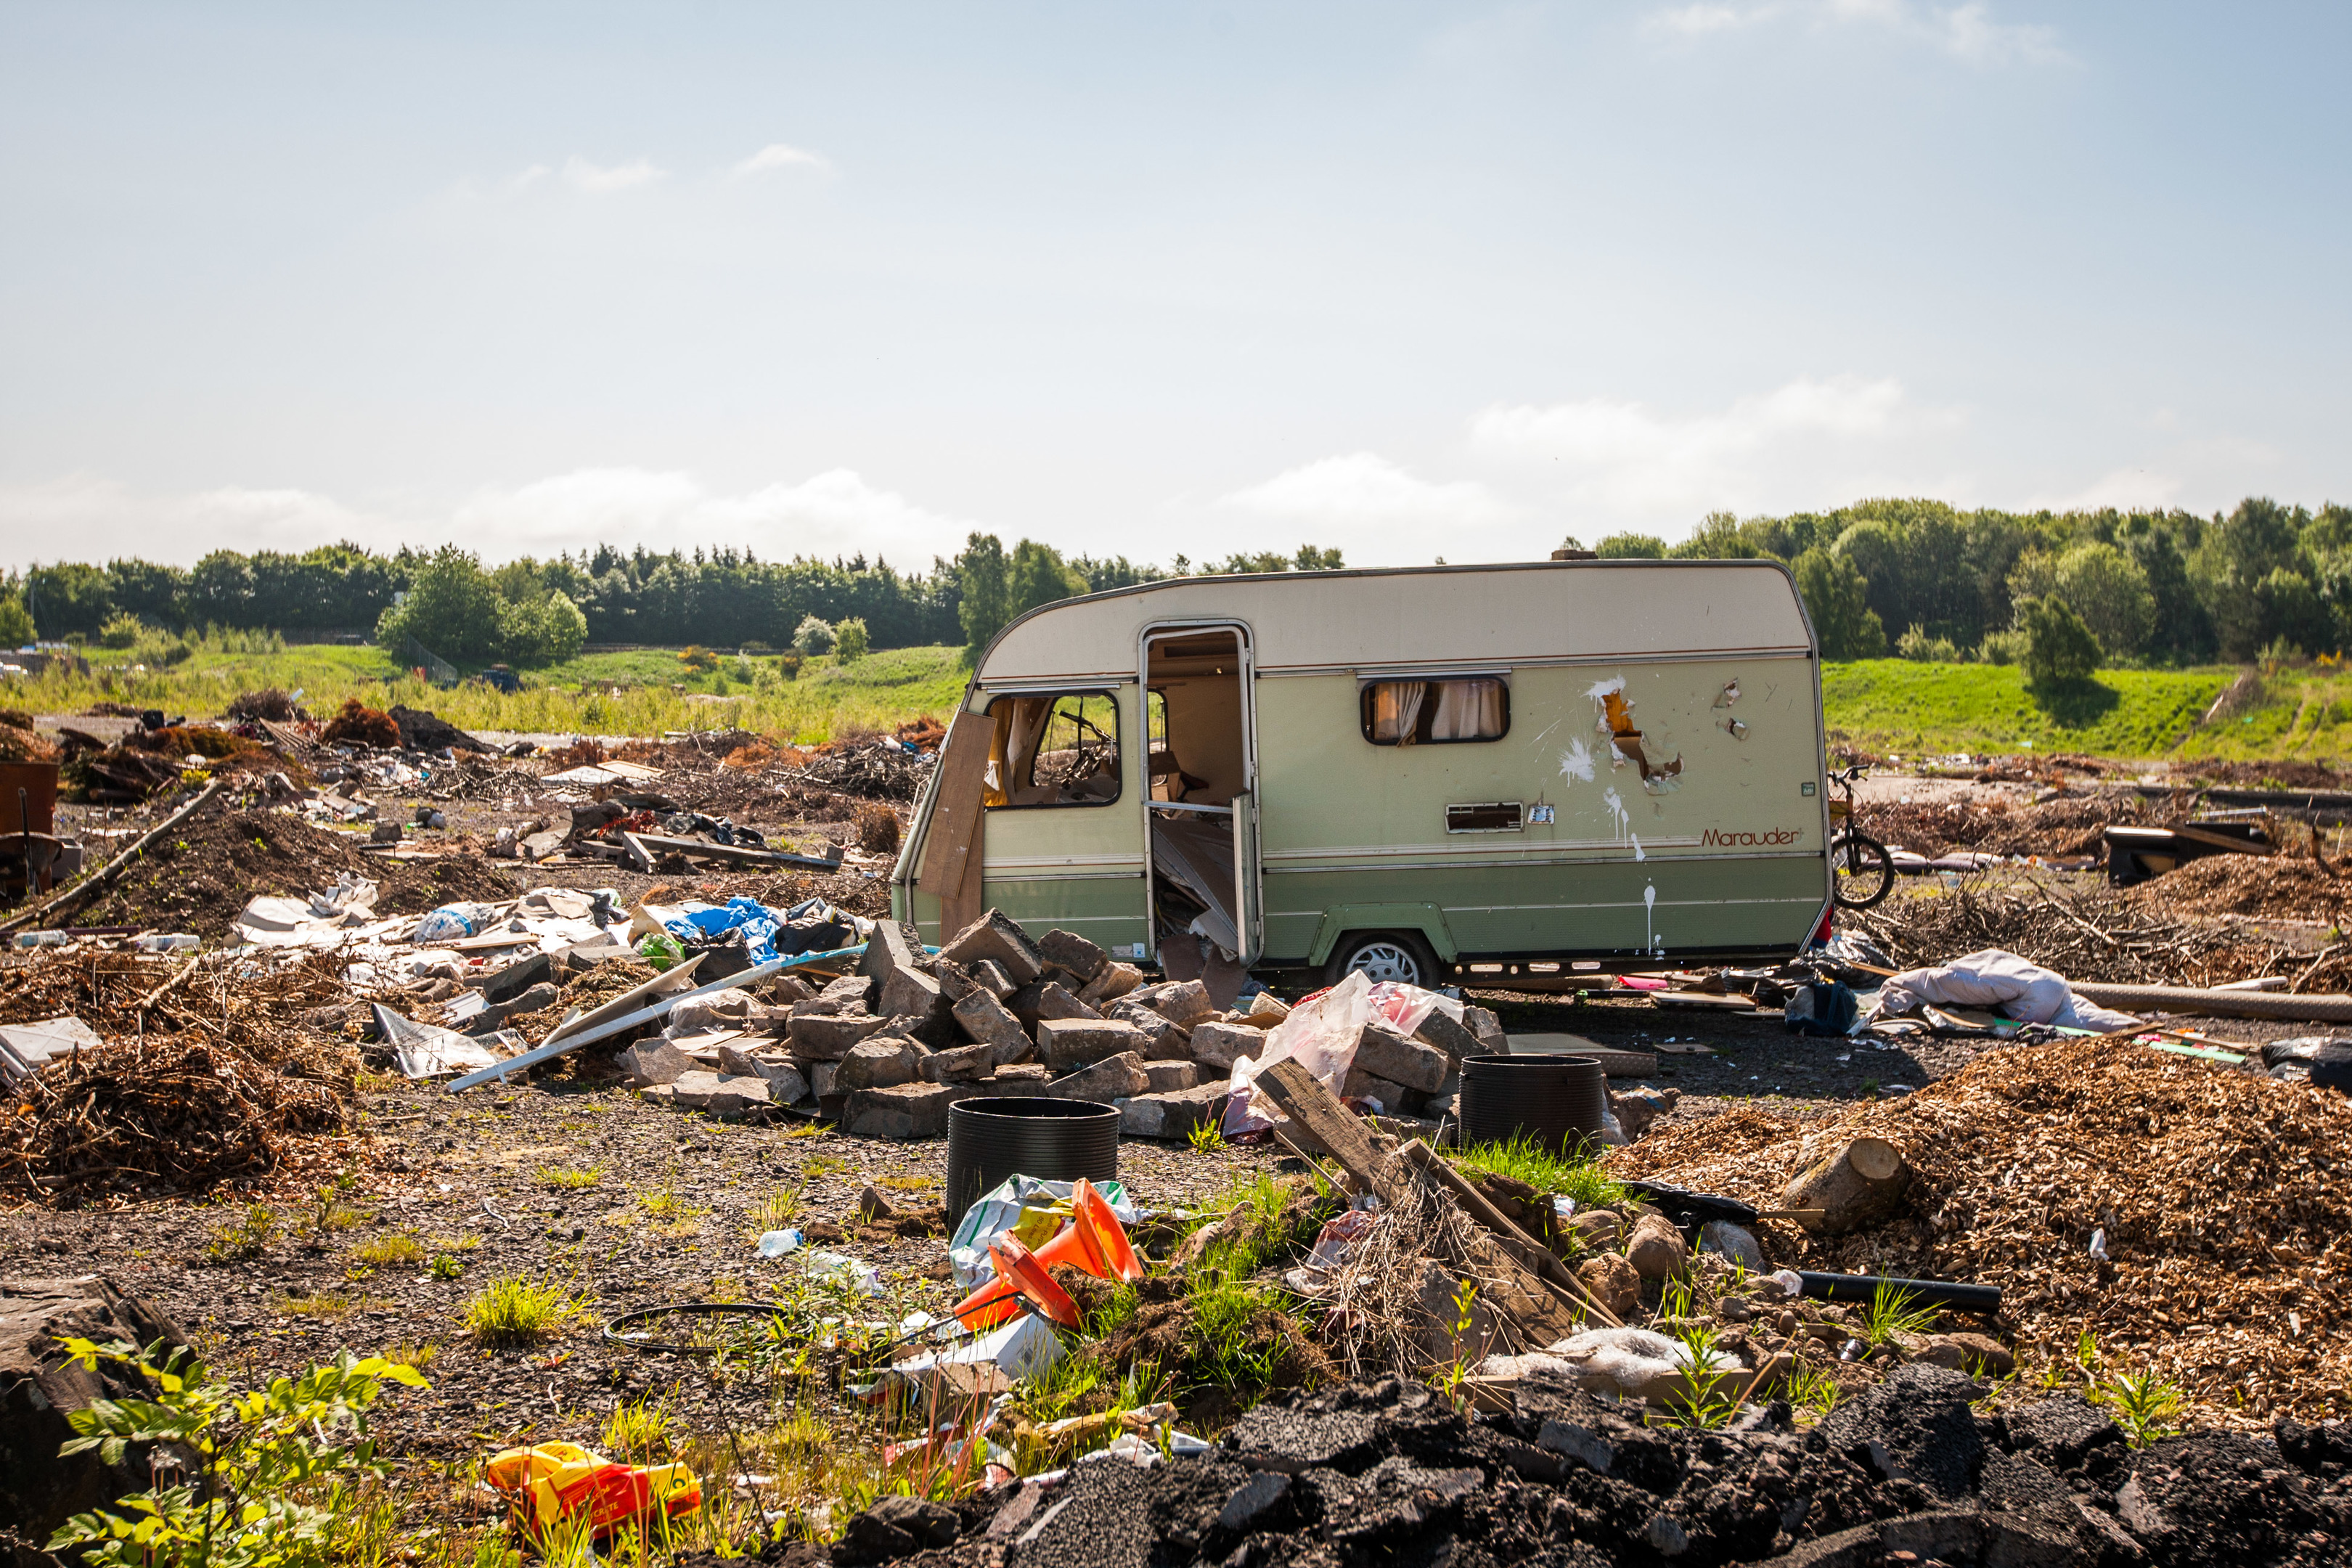 Flytipping in the Tayside area.